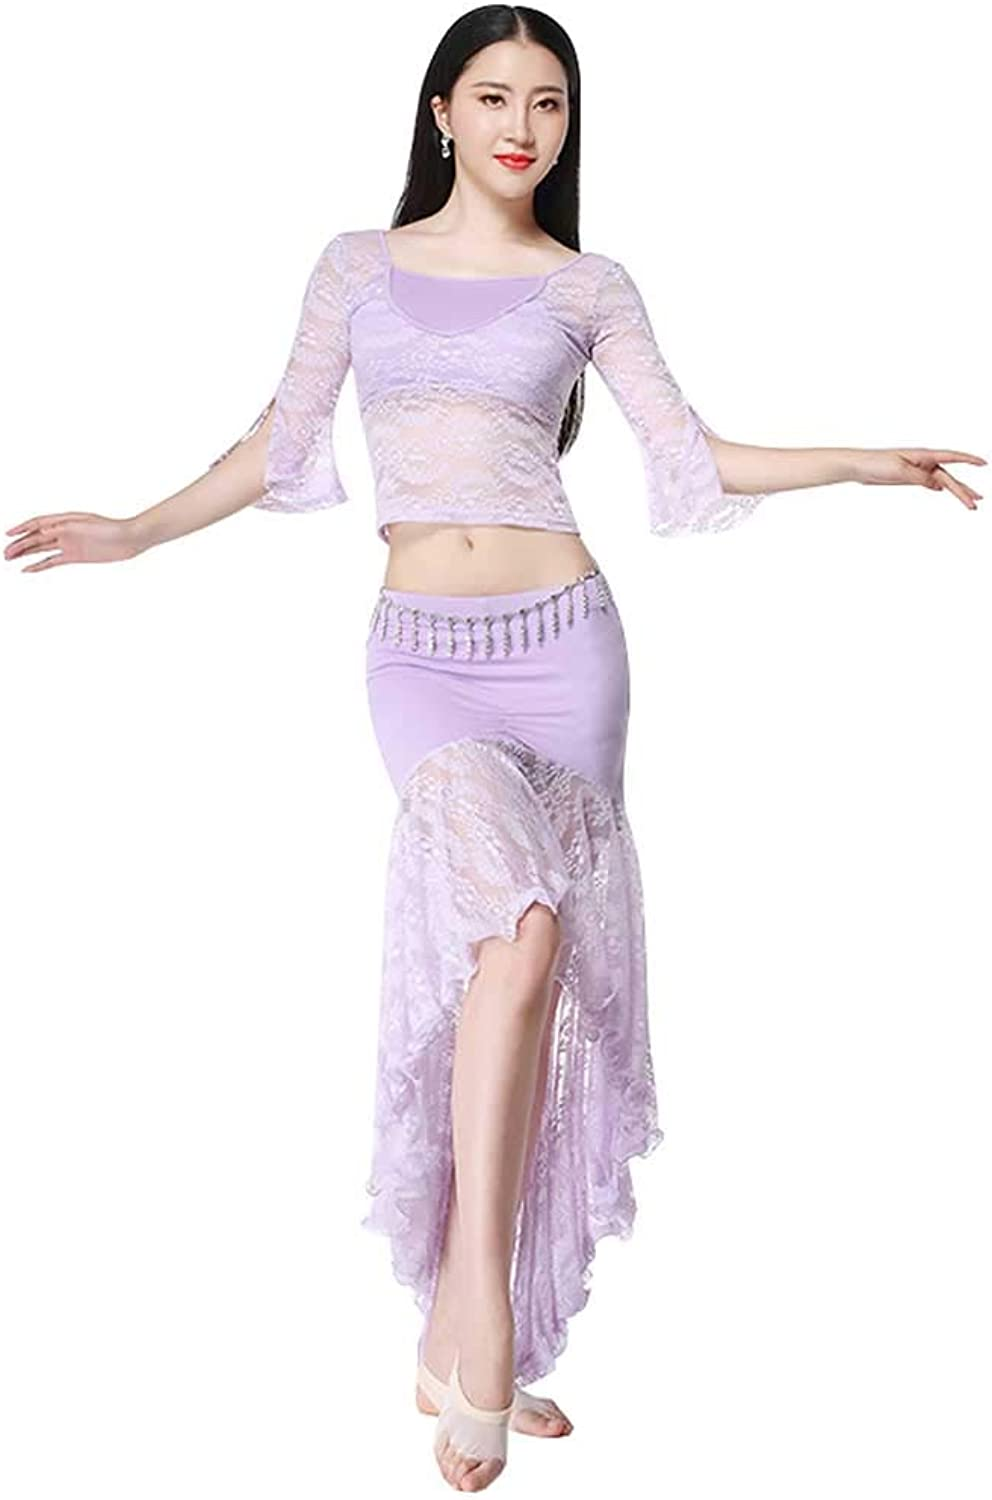 Belly Dance Practice Clothes Suit For Women,sexy Lace Gymnastics Performance Performance Clothes suit